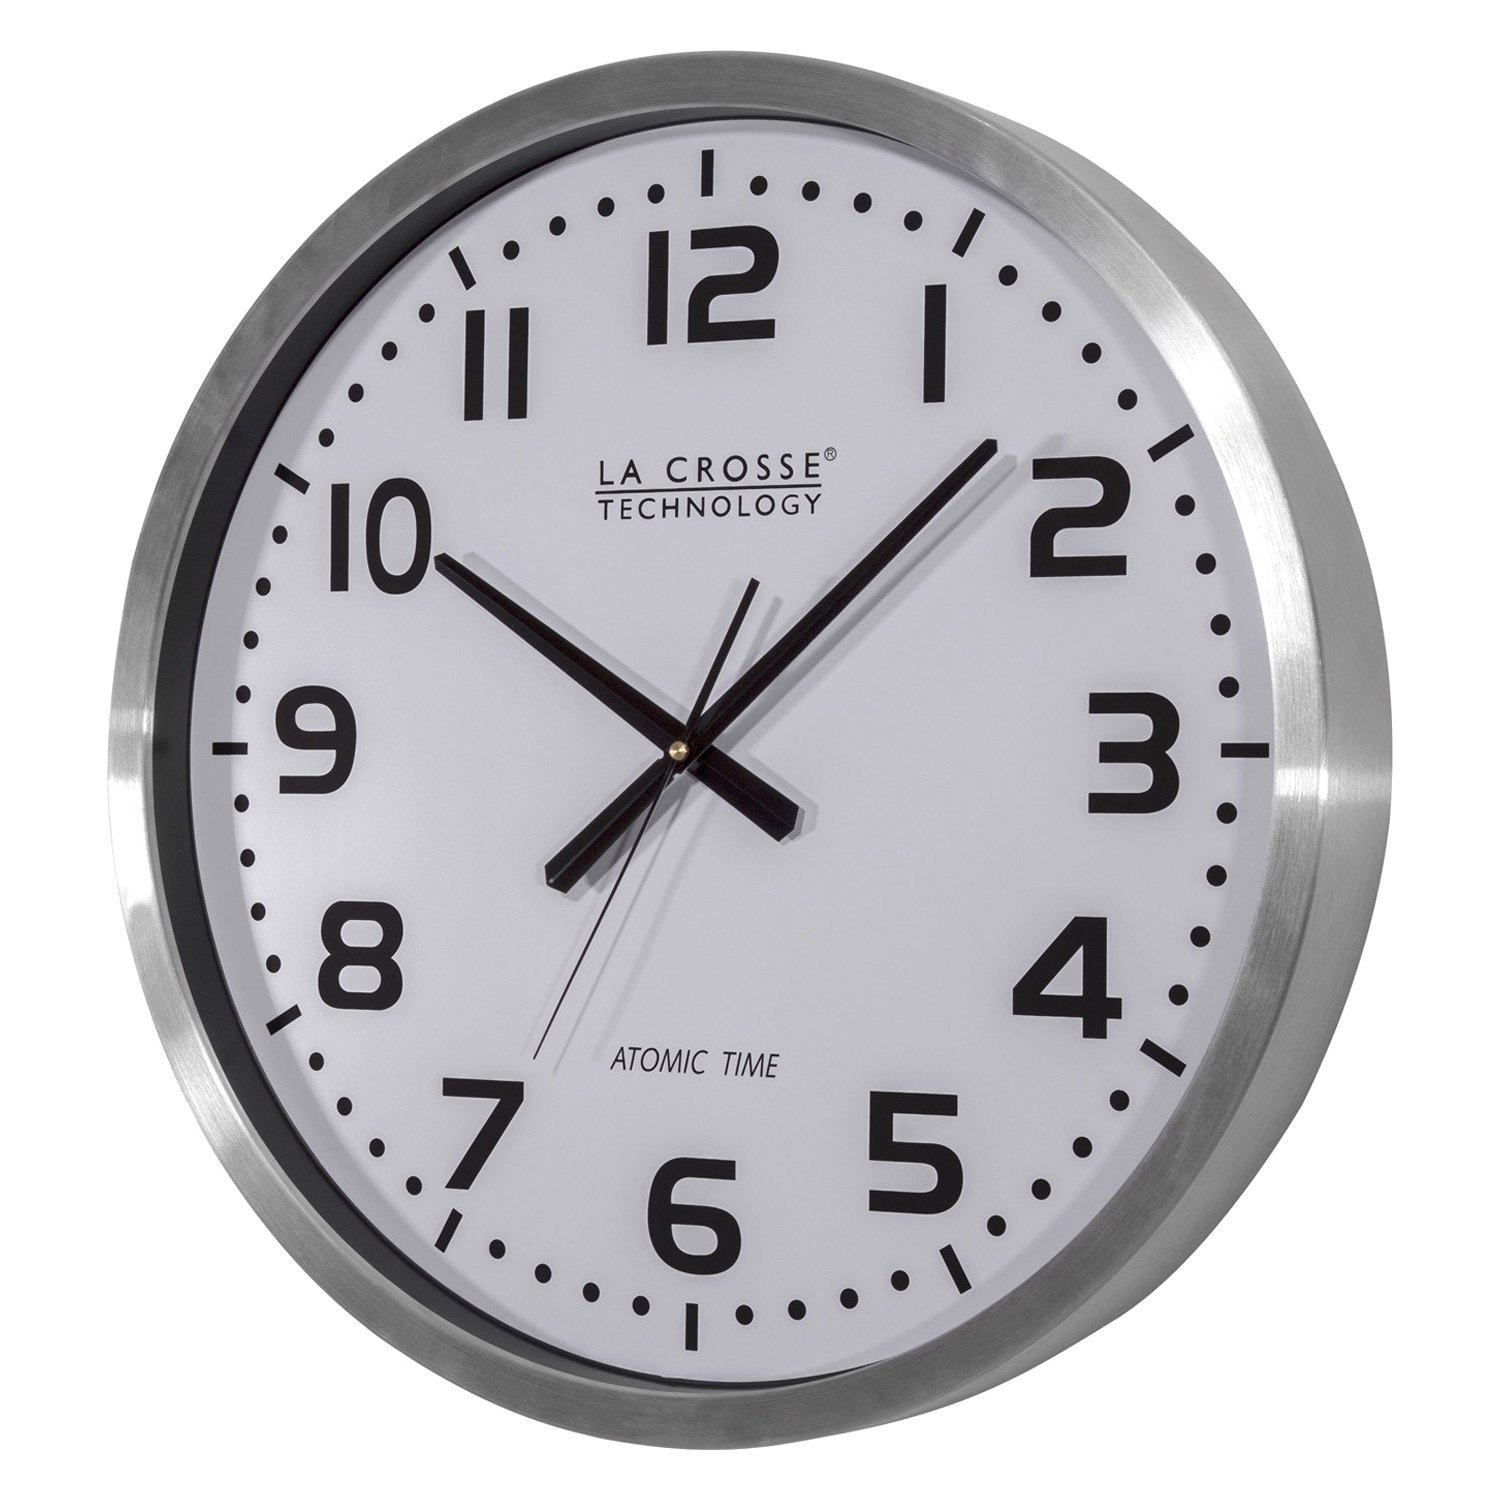 Statement Wall Clocks La Crosse Technology 404 1220 20 Quot Atomic Wall Clock